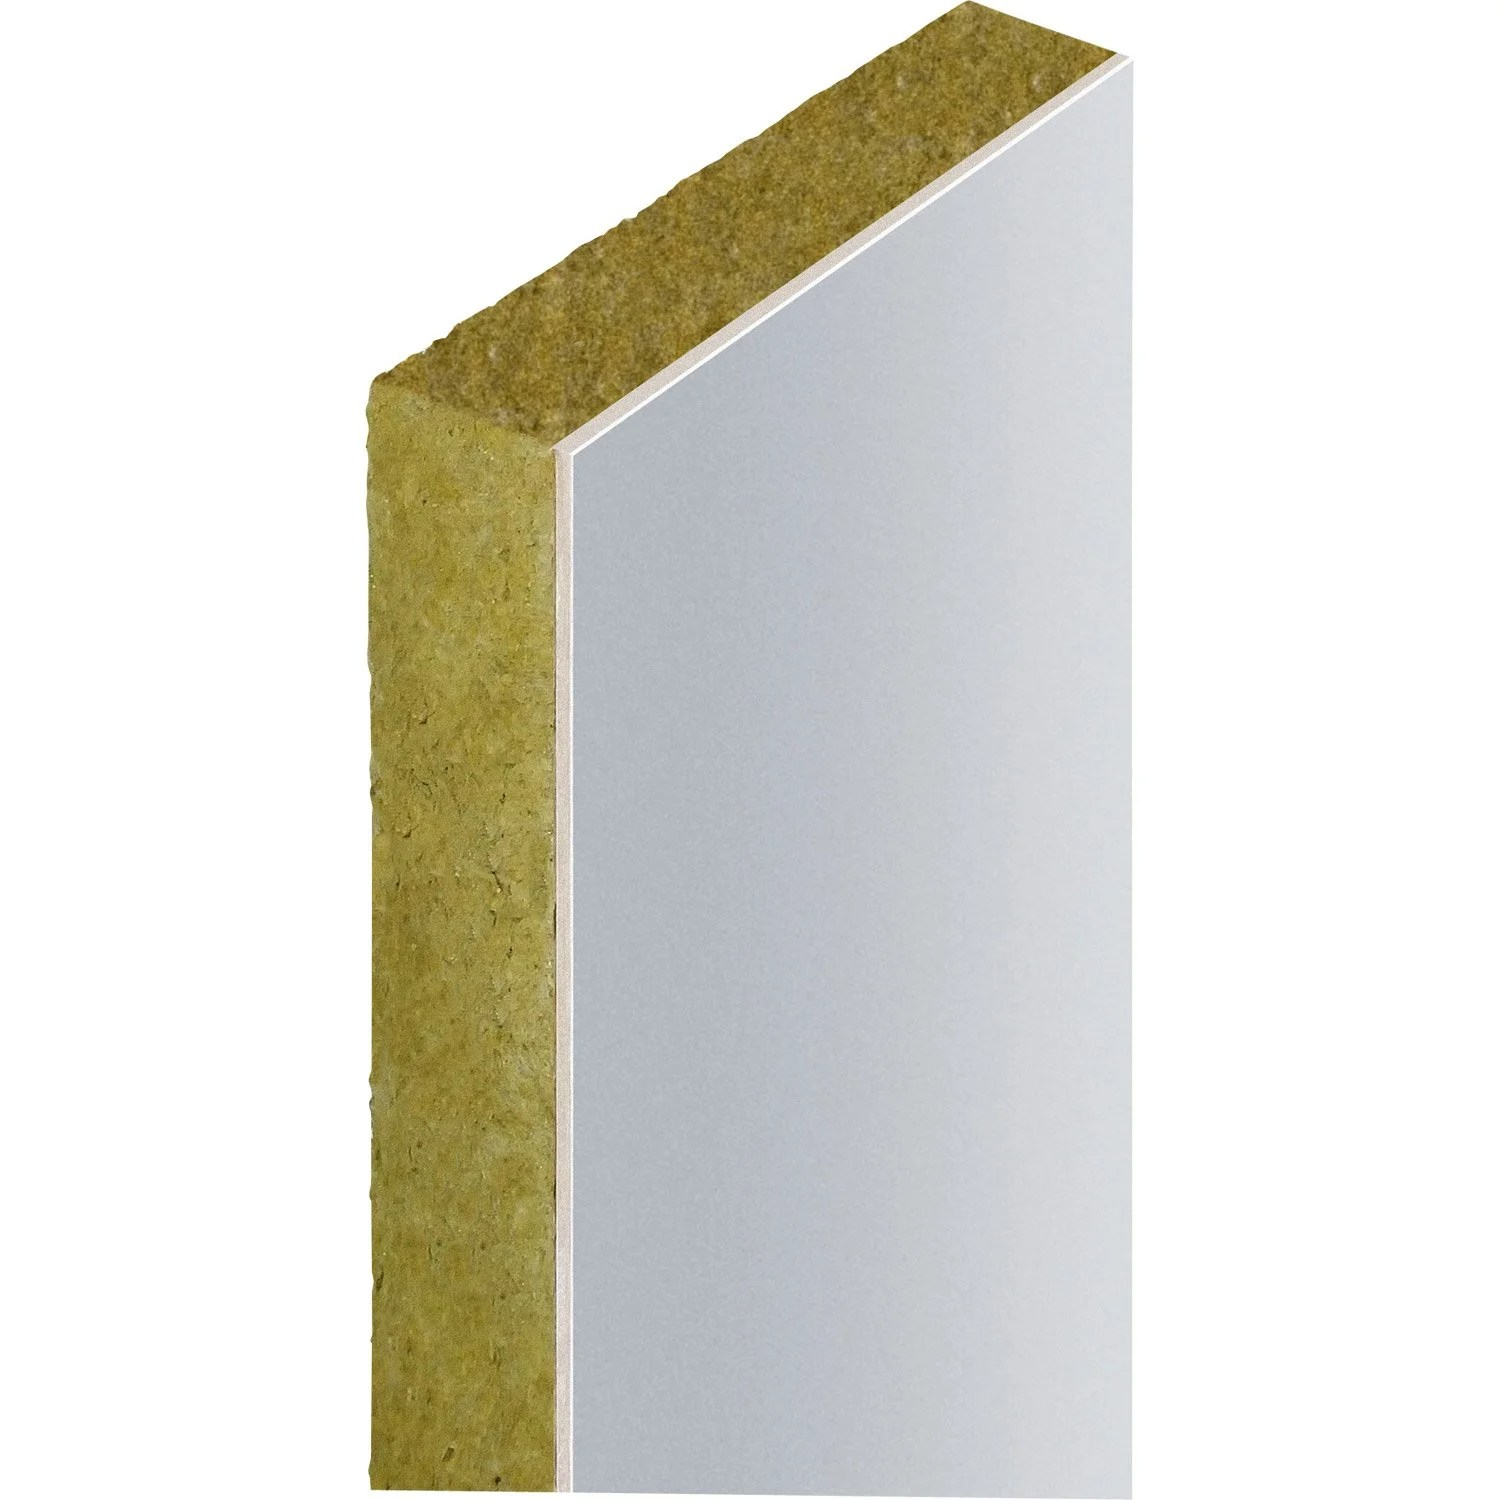 Placo Phonique Leroy Merlin Doublage En Laine De Roche Labelrock Rockwool 2 5x1 2m Ep 50mm R 1 2